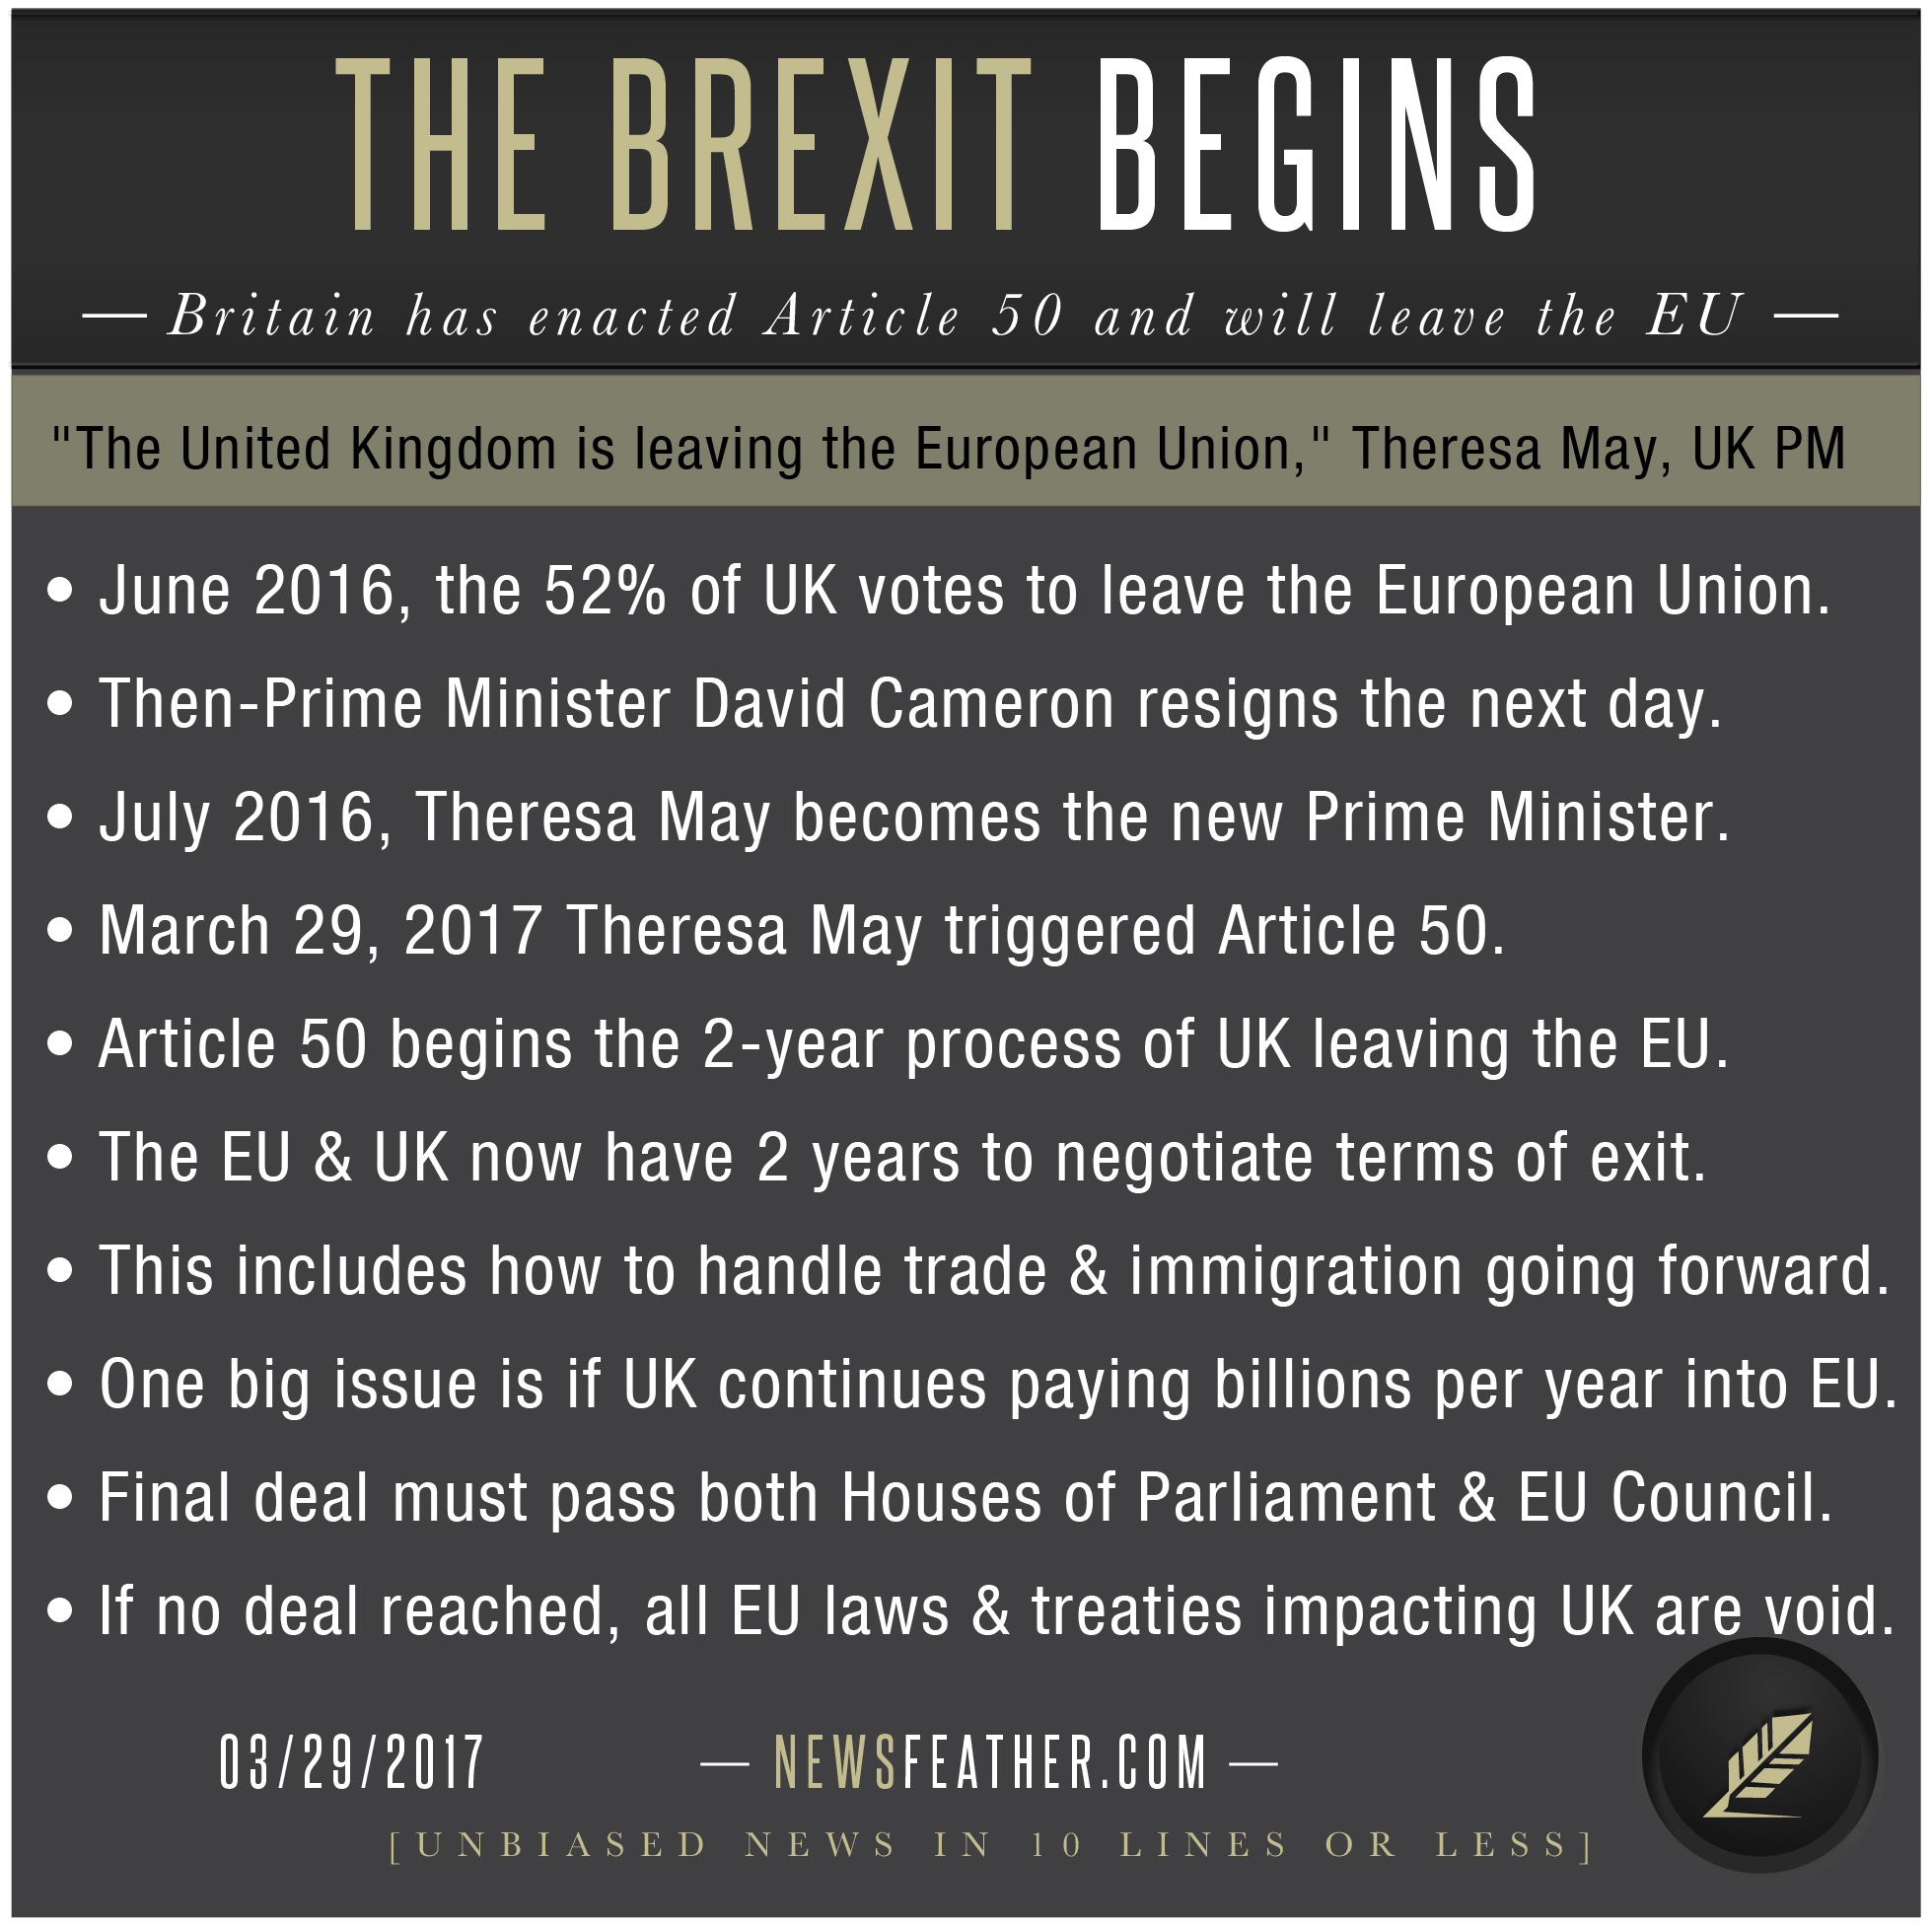 The UK has triggered Article 50 and will now begin negotiations to leave the EU in 2 years.